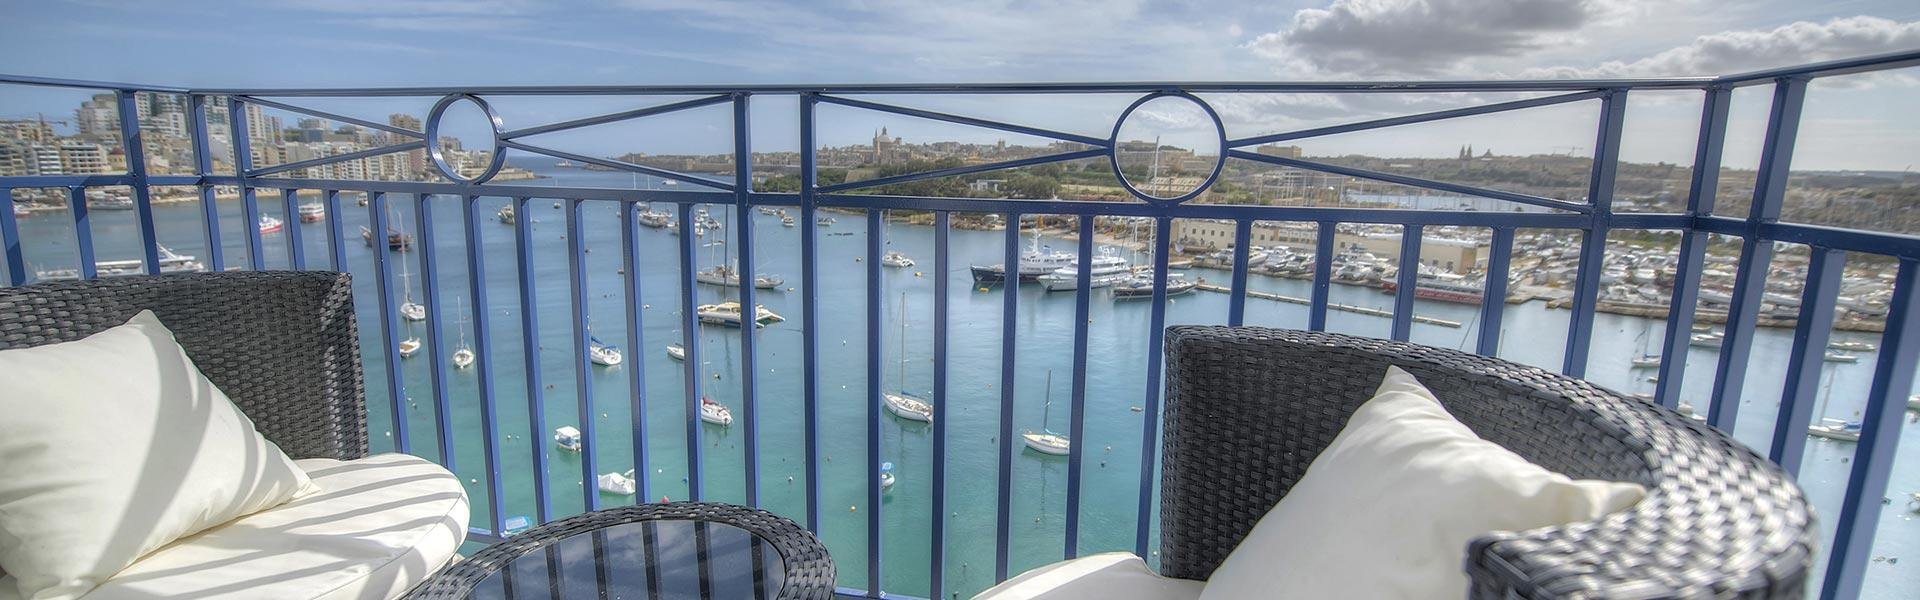 Sea View Hotel in Malta